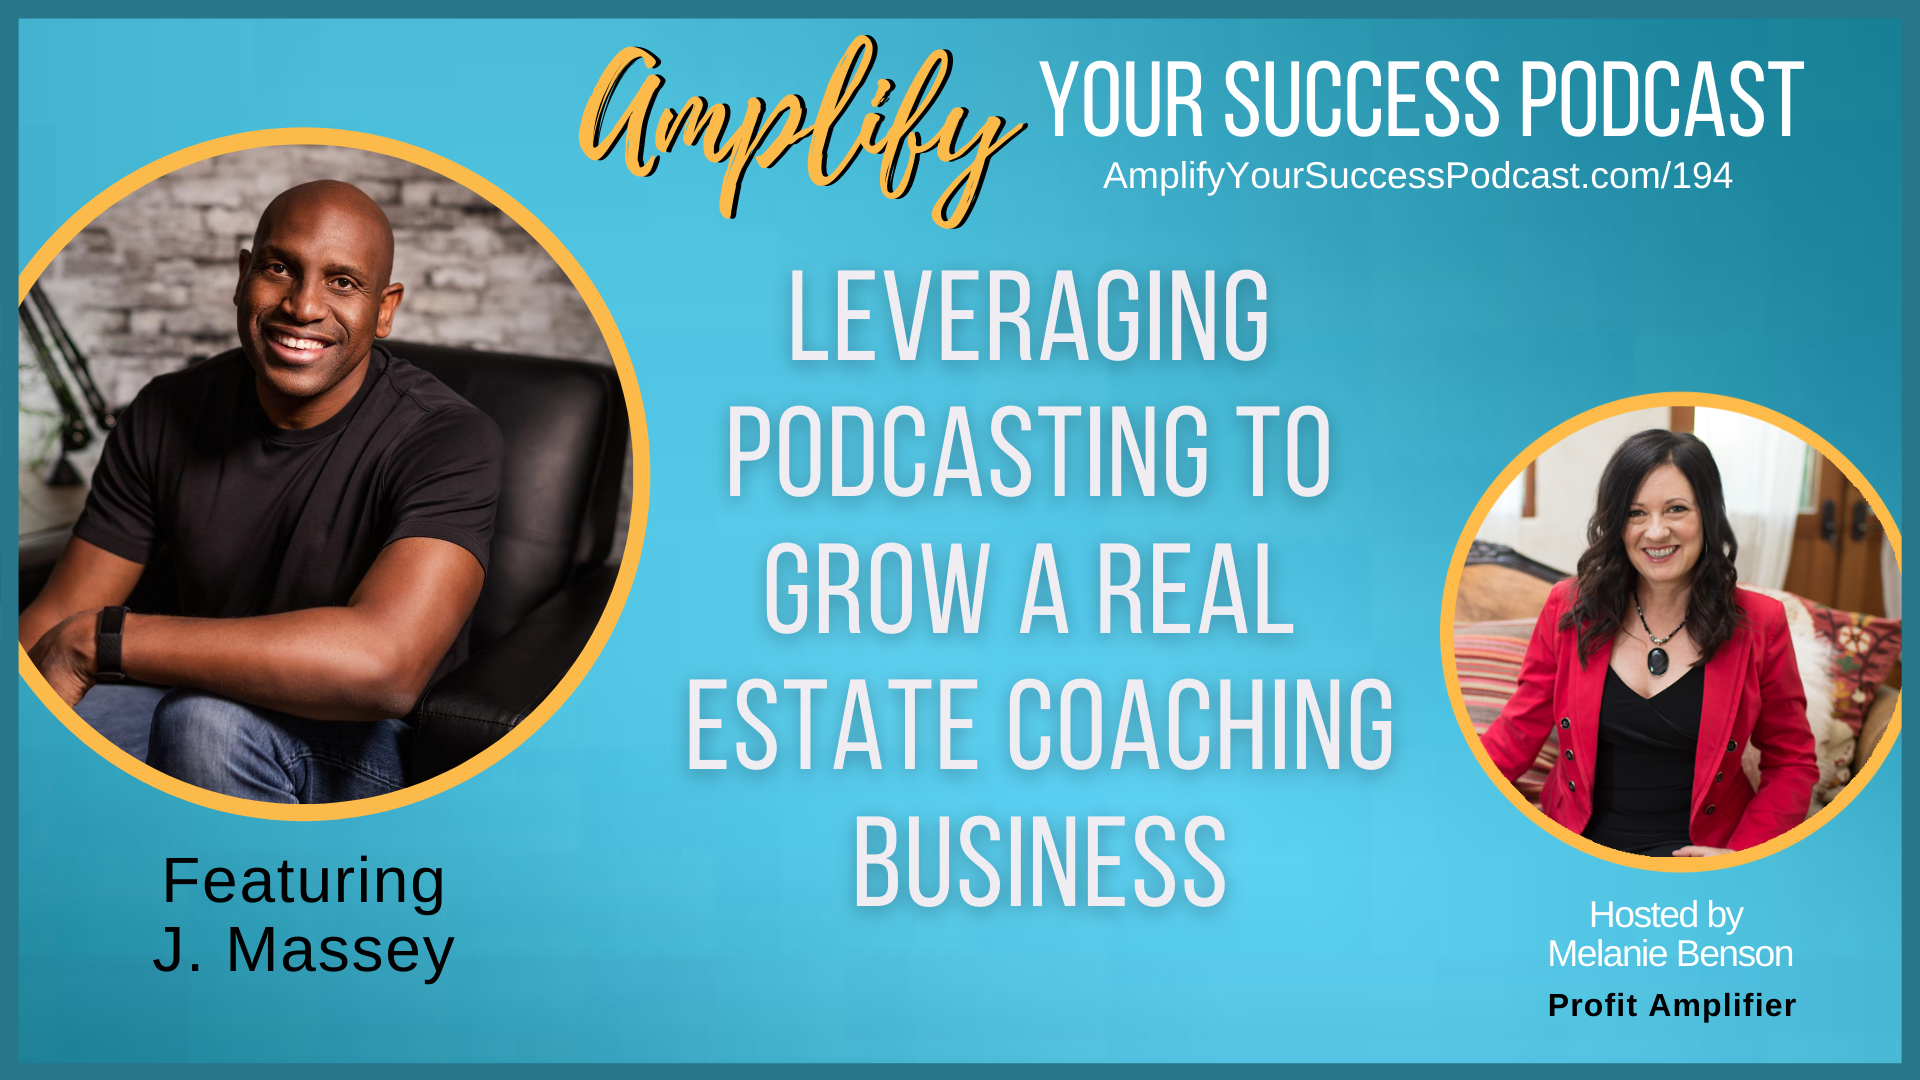 How Podcasting Can Grow Real Estate Coaching Business with J. Massey